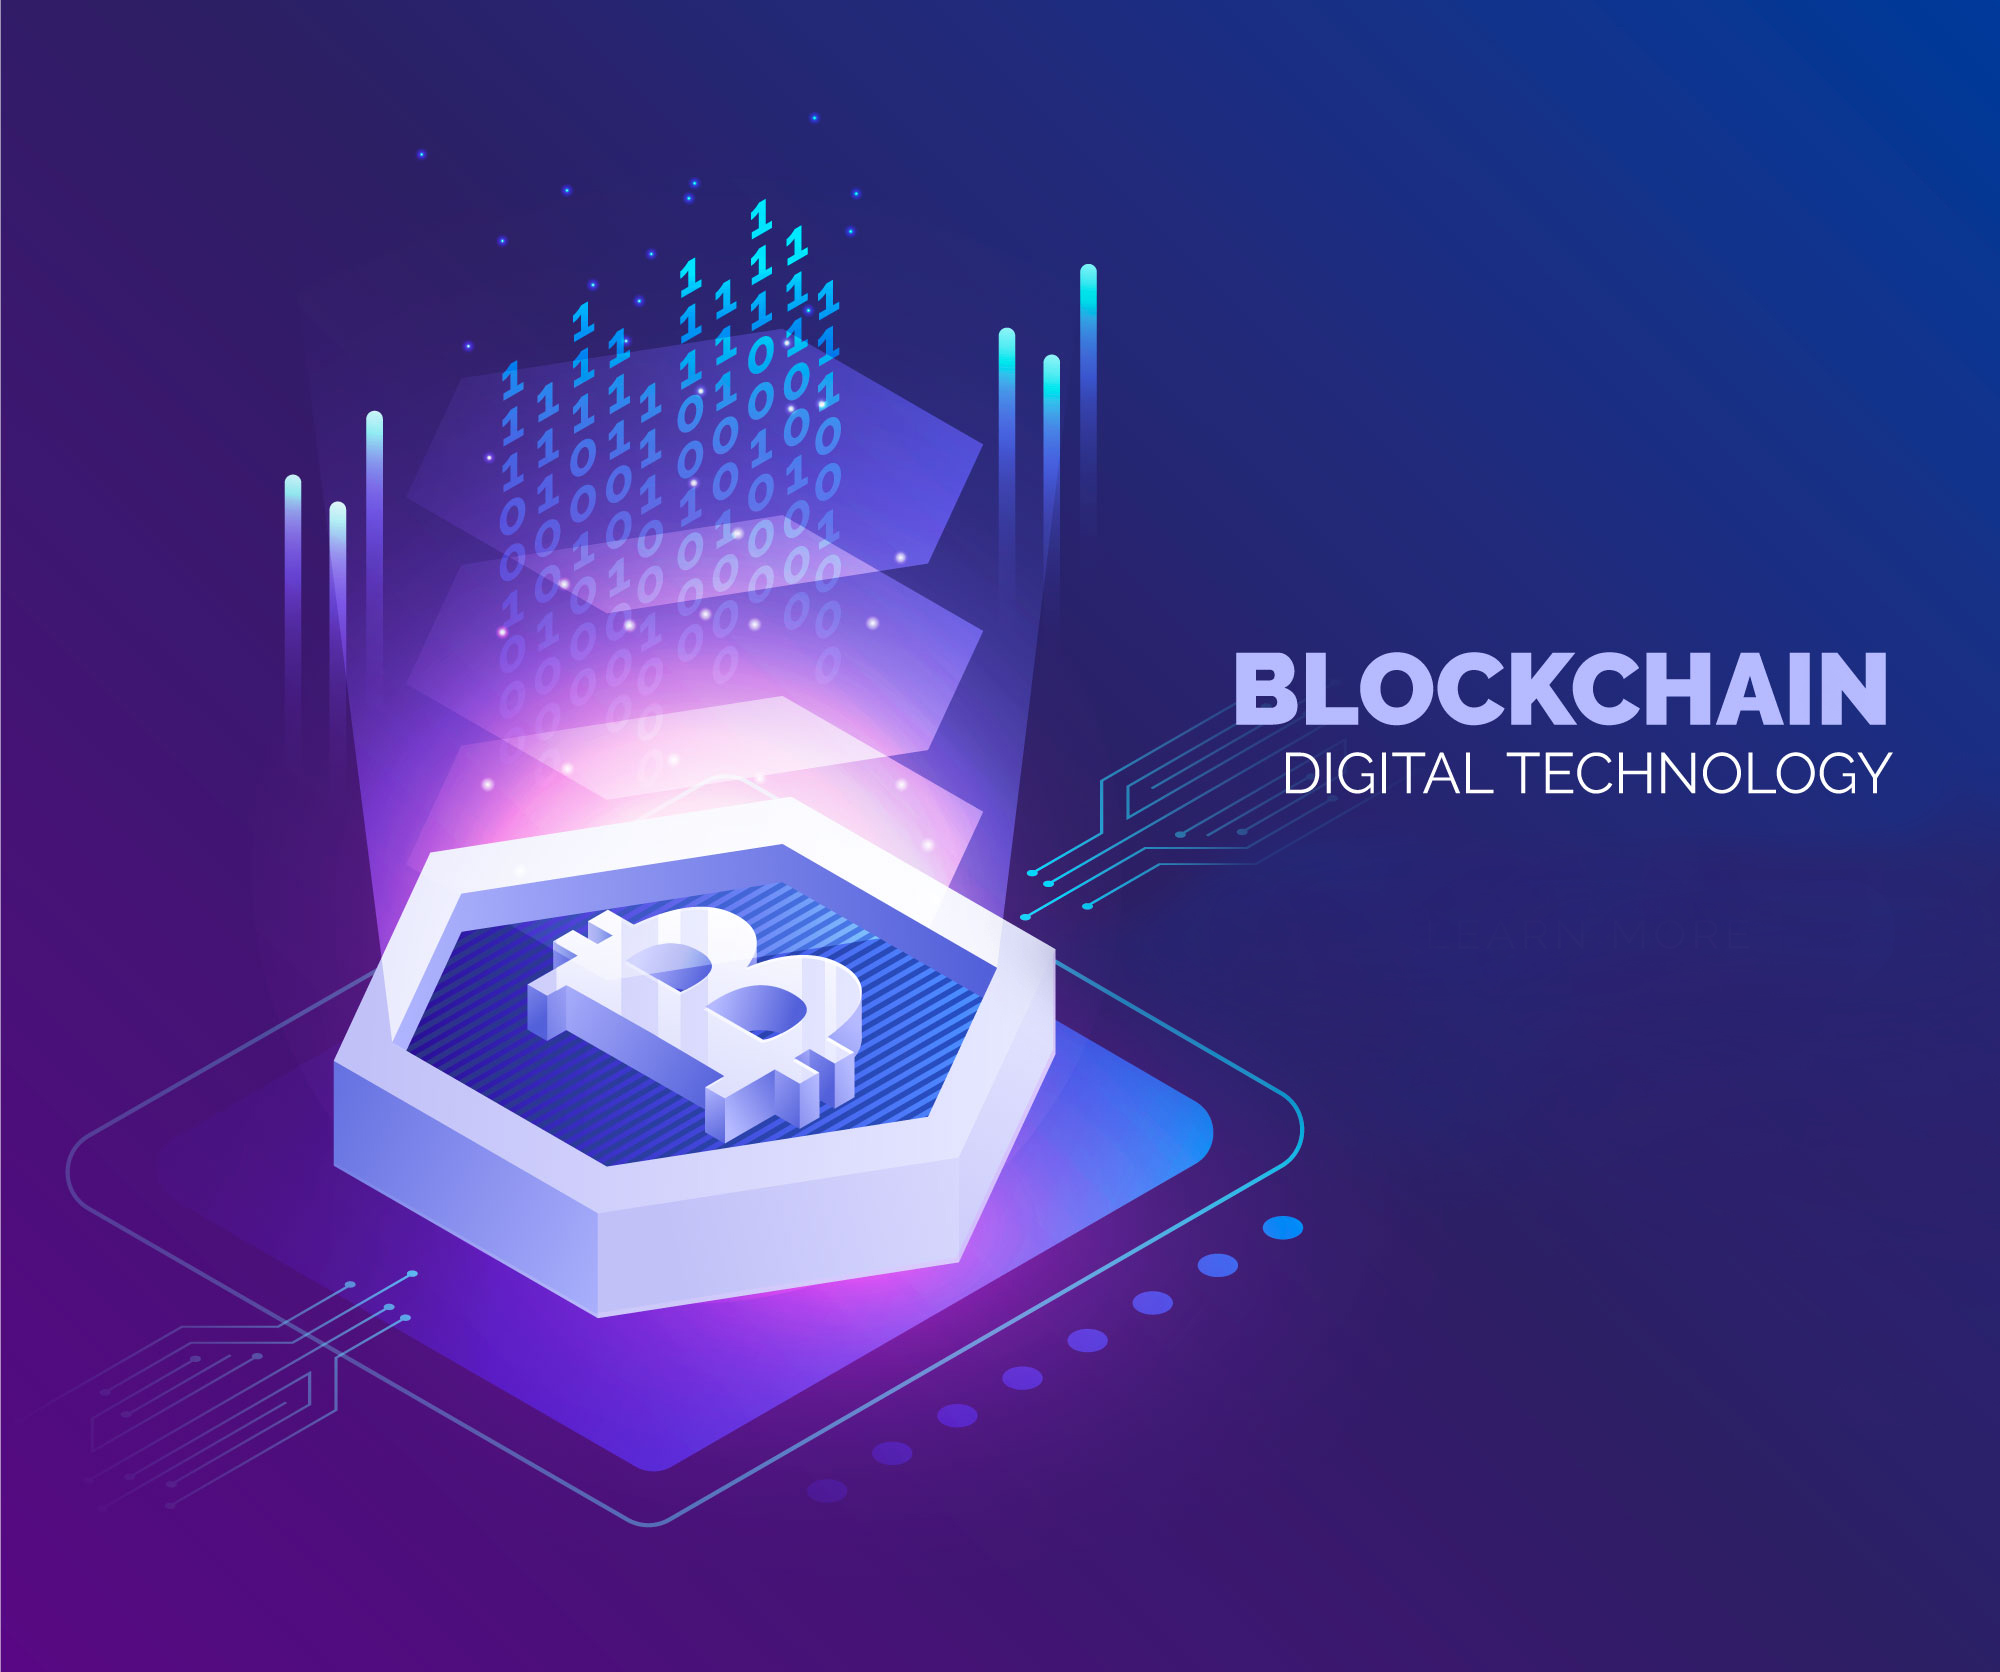 Rise of Blockchain-related technologies